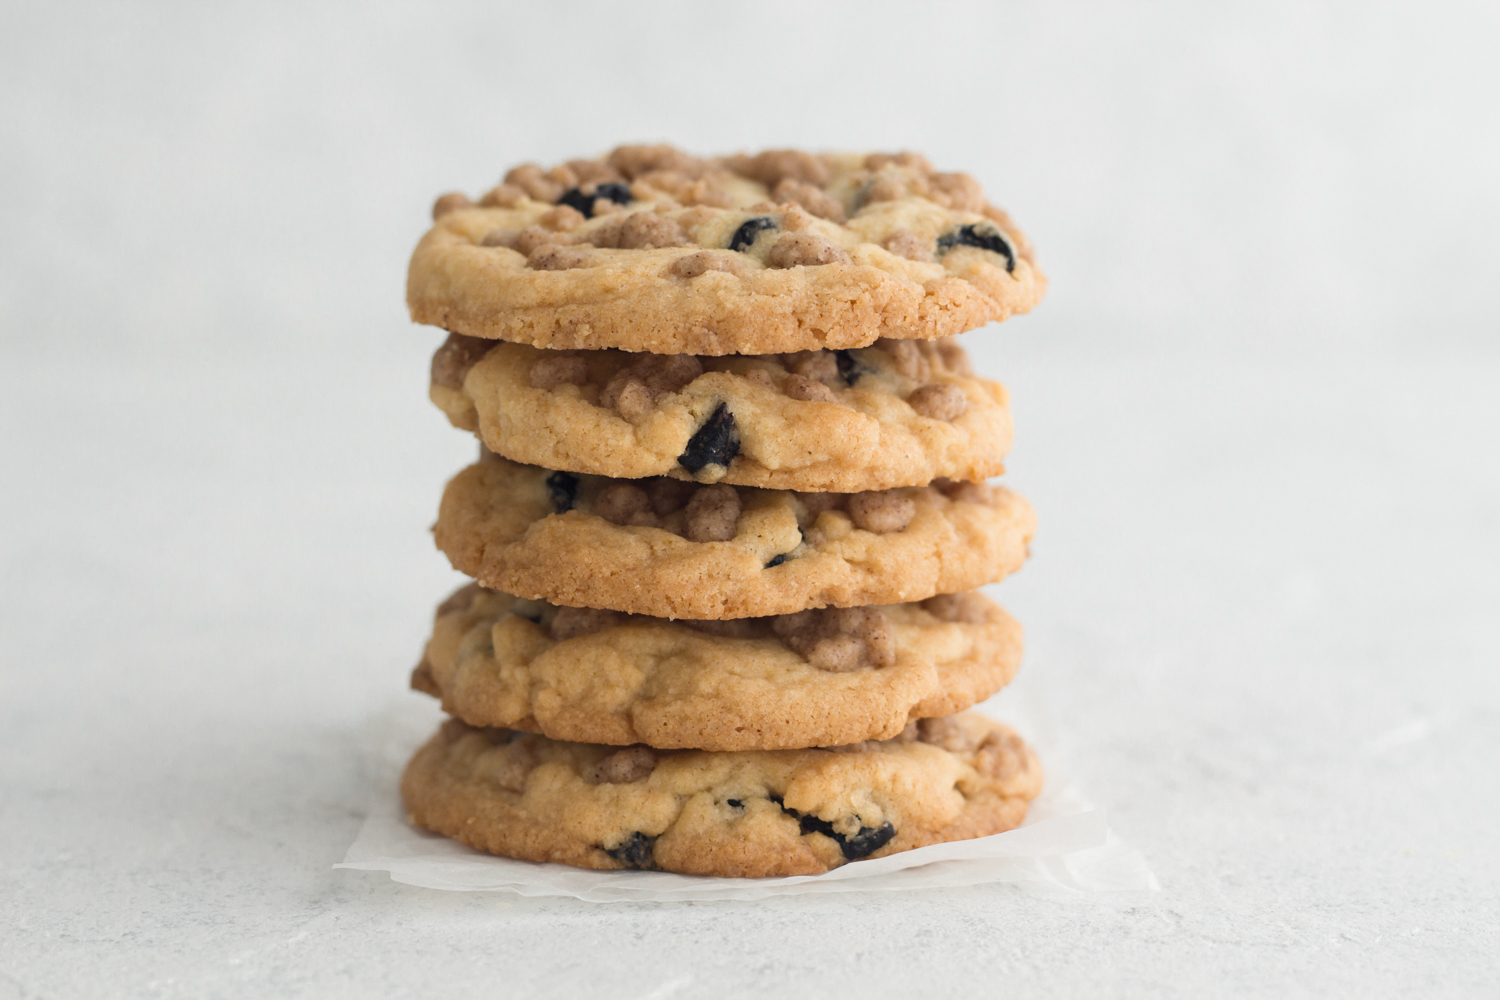 side view of blueberry cookies with streusel topping stacked on a white background